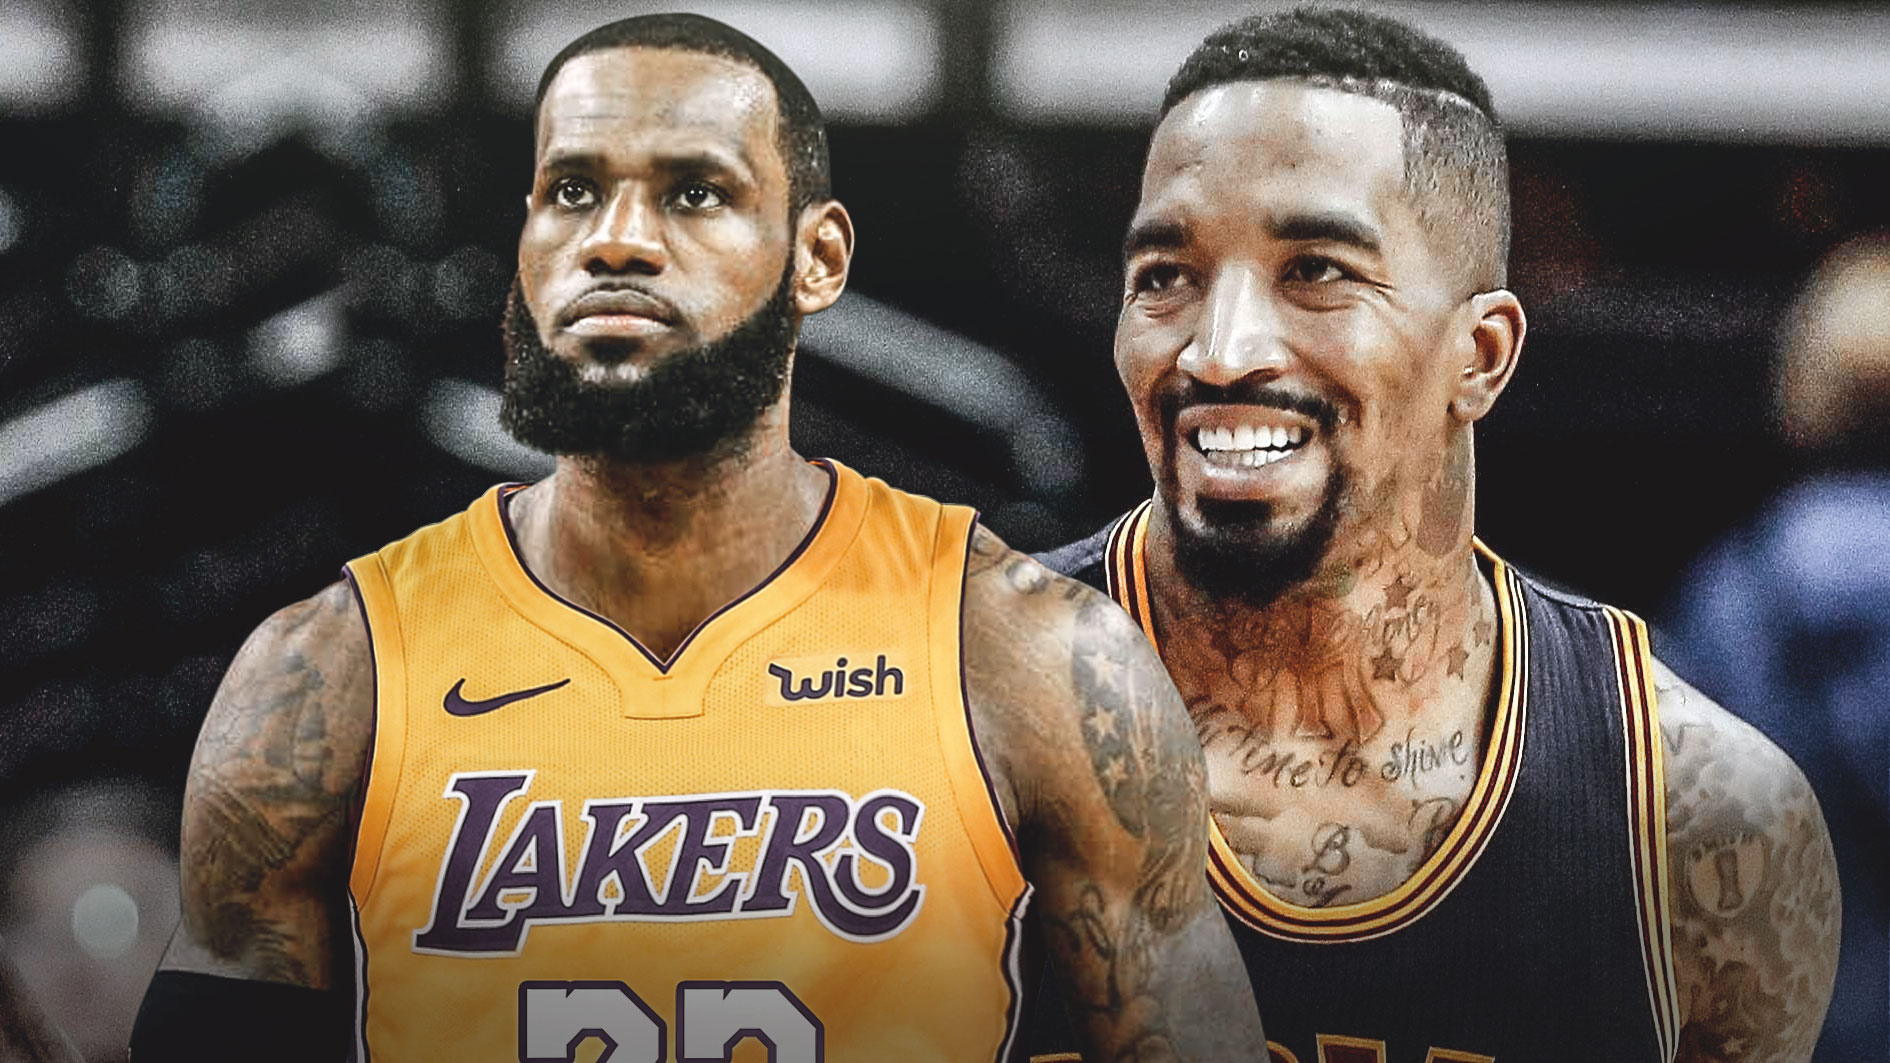 LeBron James and J.R. Smith Lakers